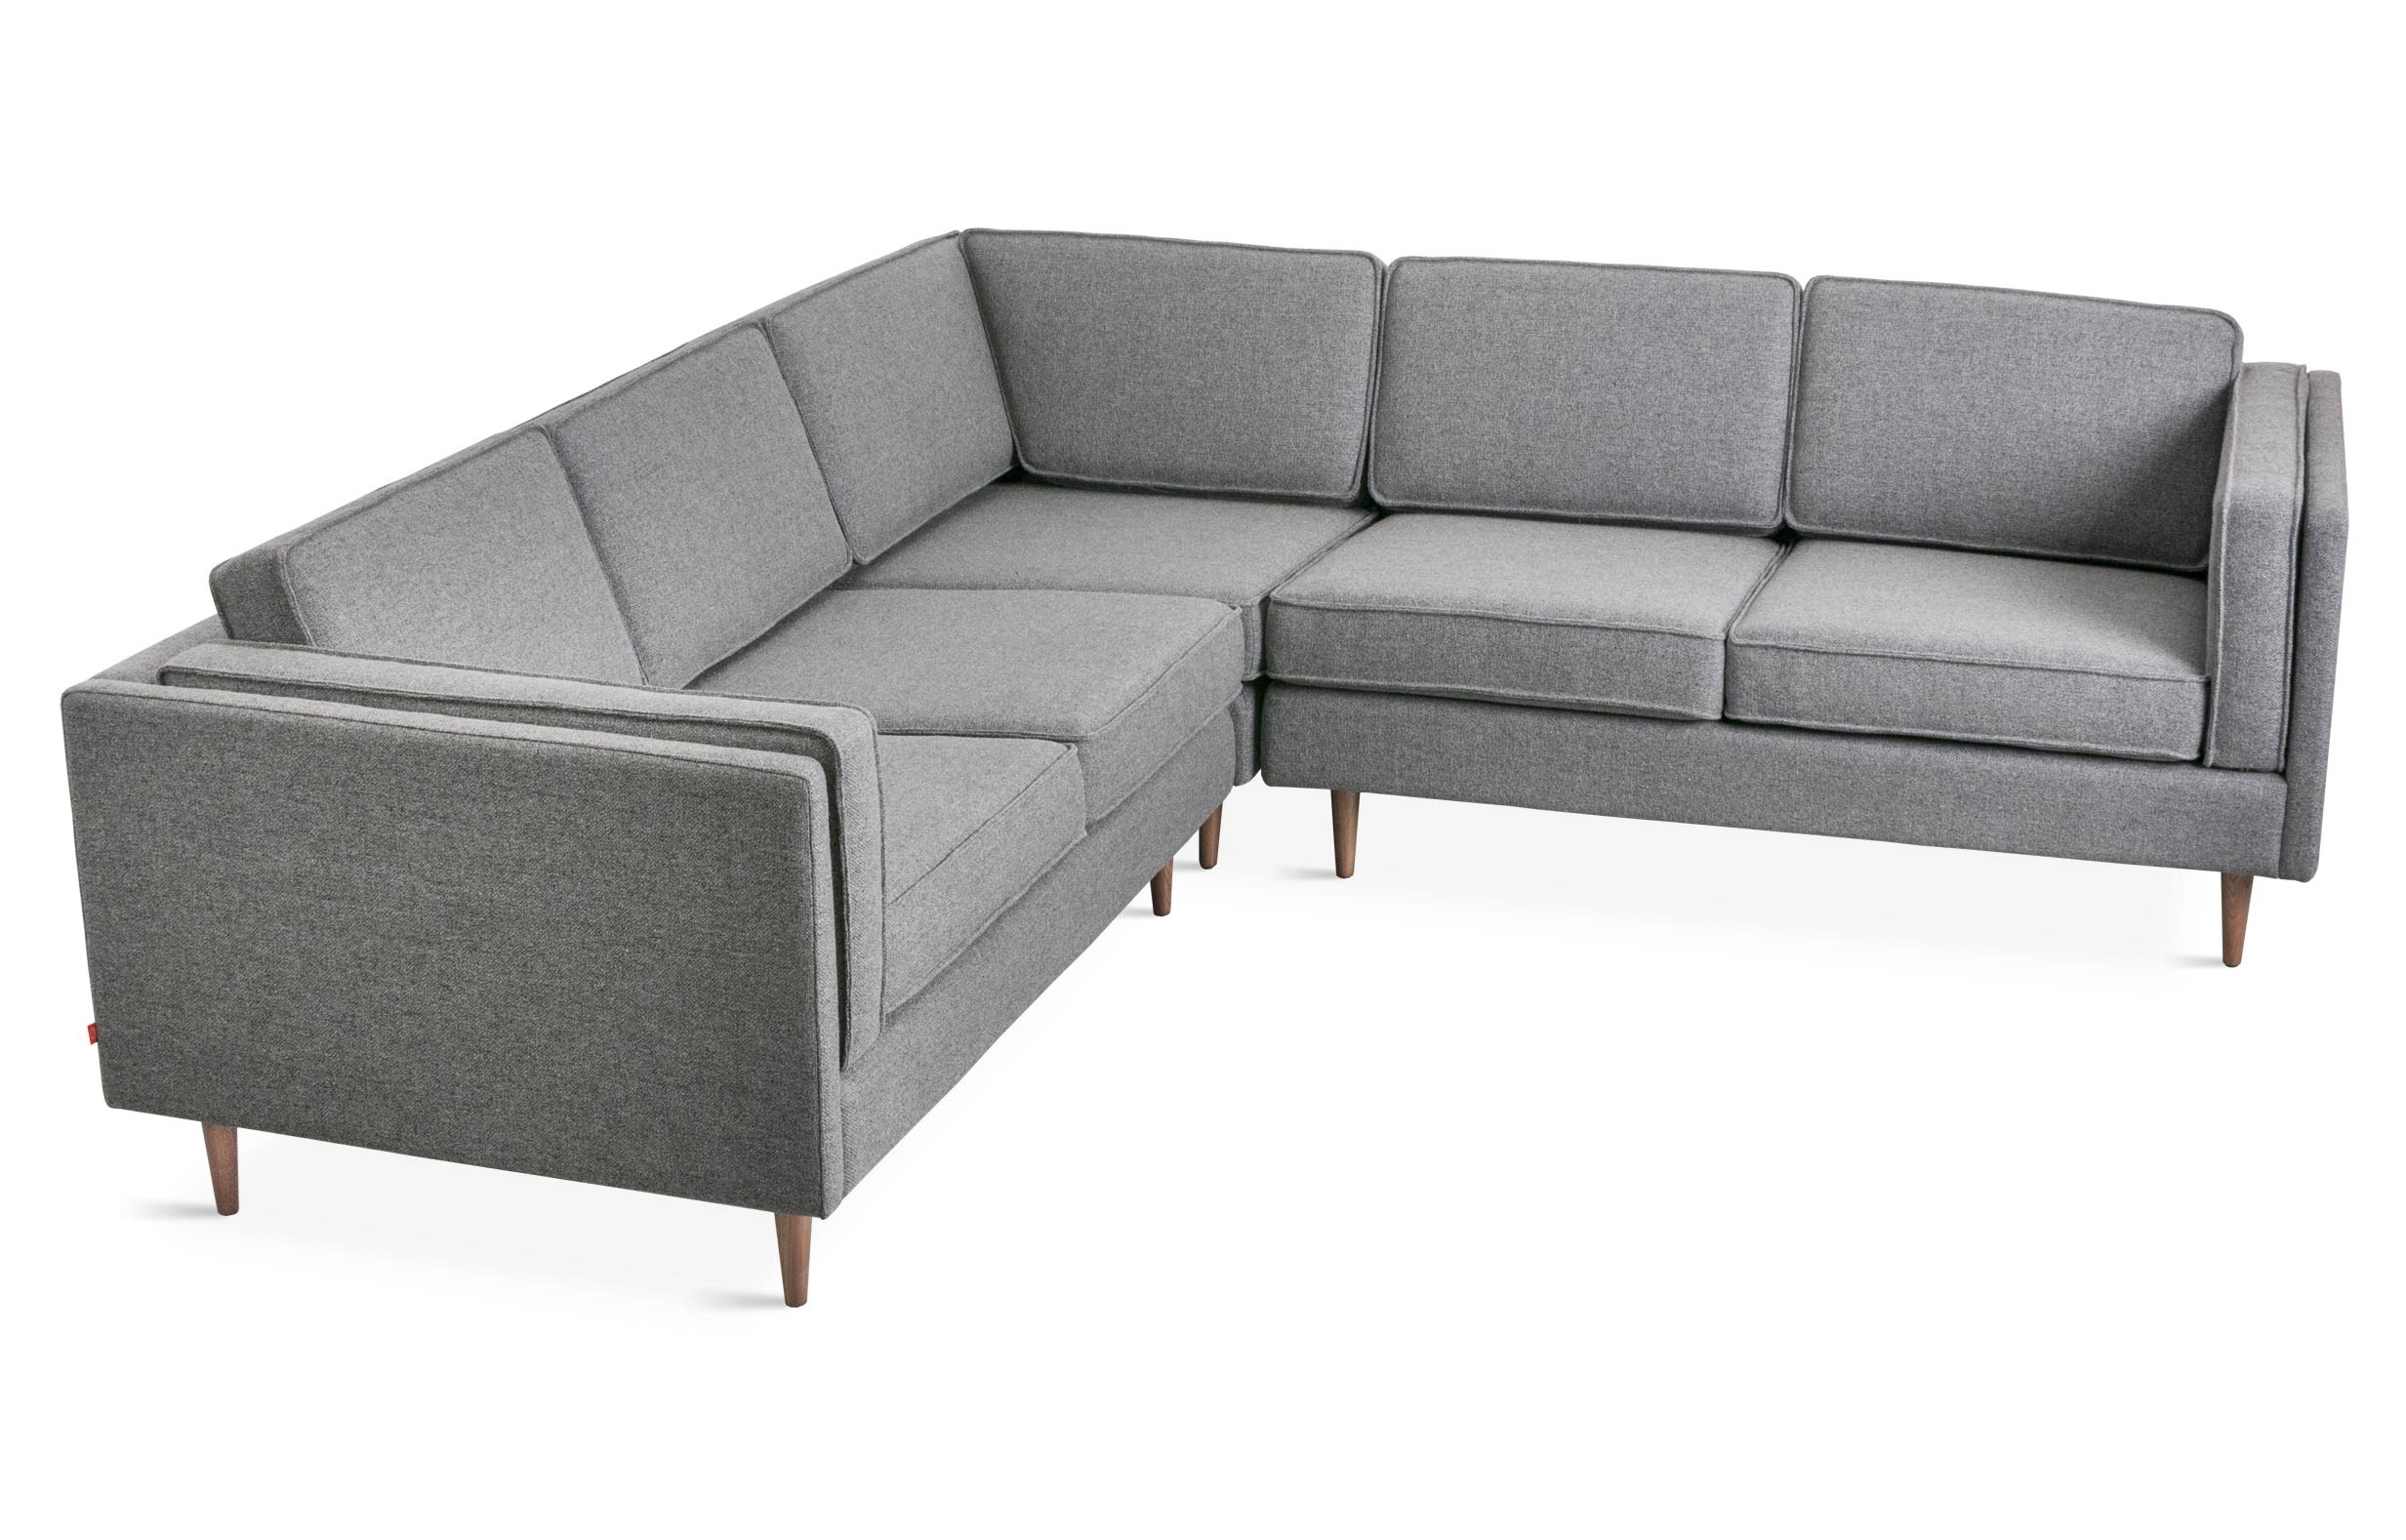 Adelaide Bi Sectional Viesso With Regard To Bisectional Sofa (#2 of 12)